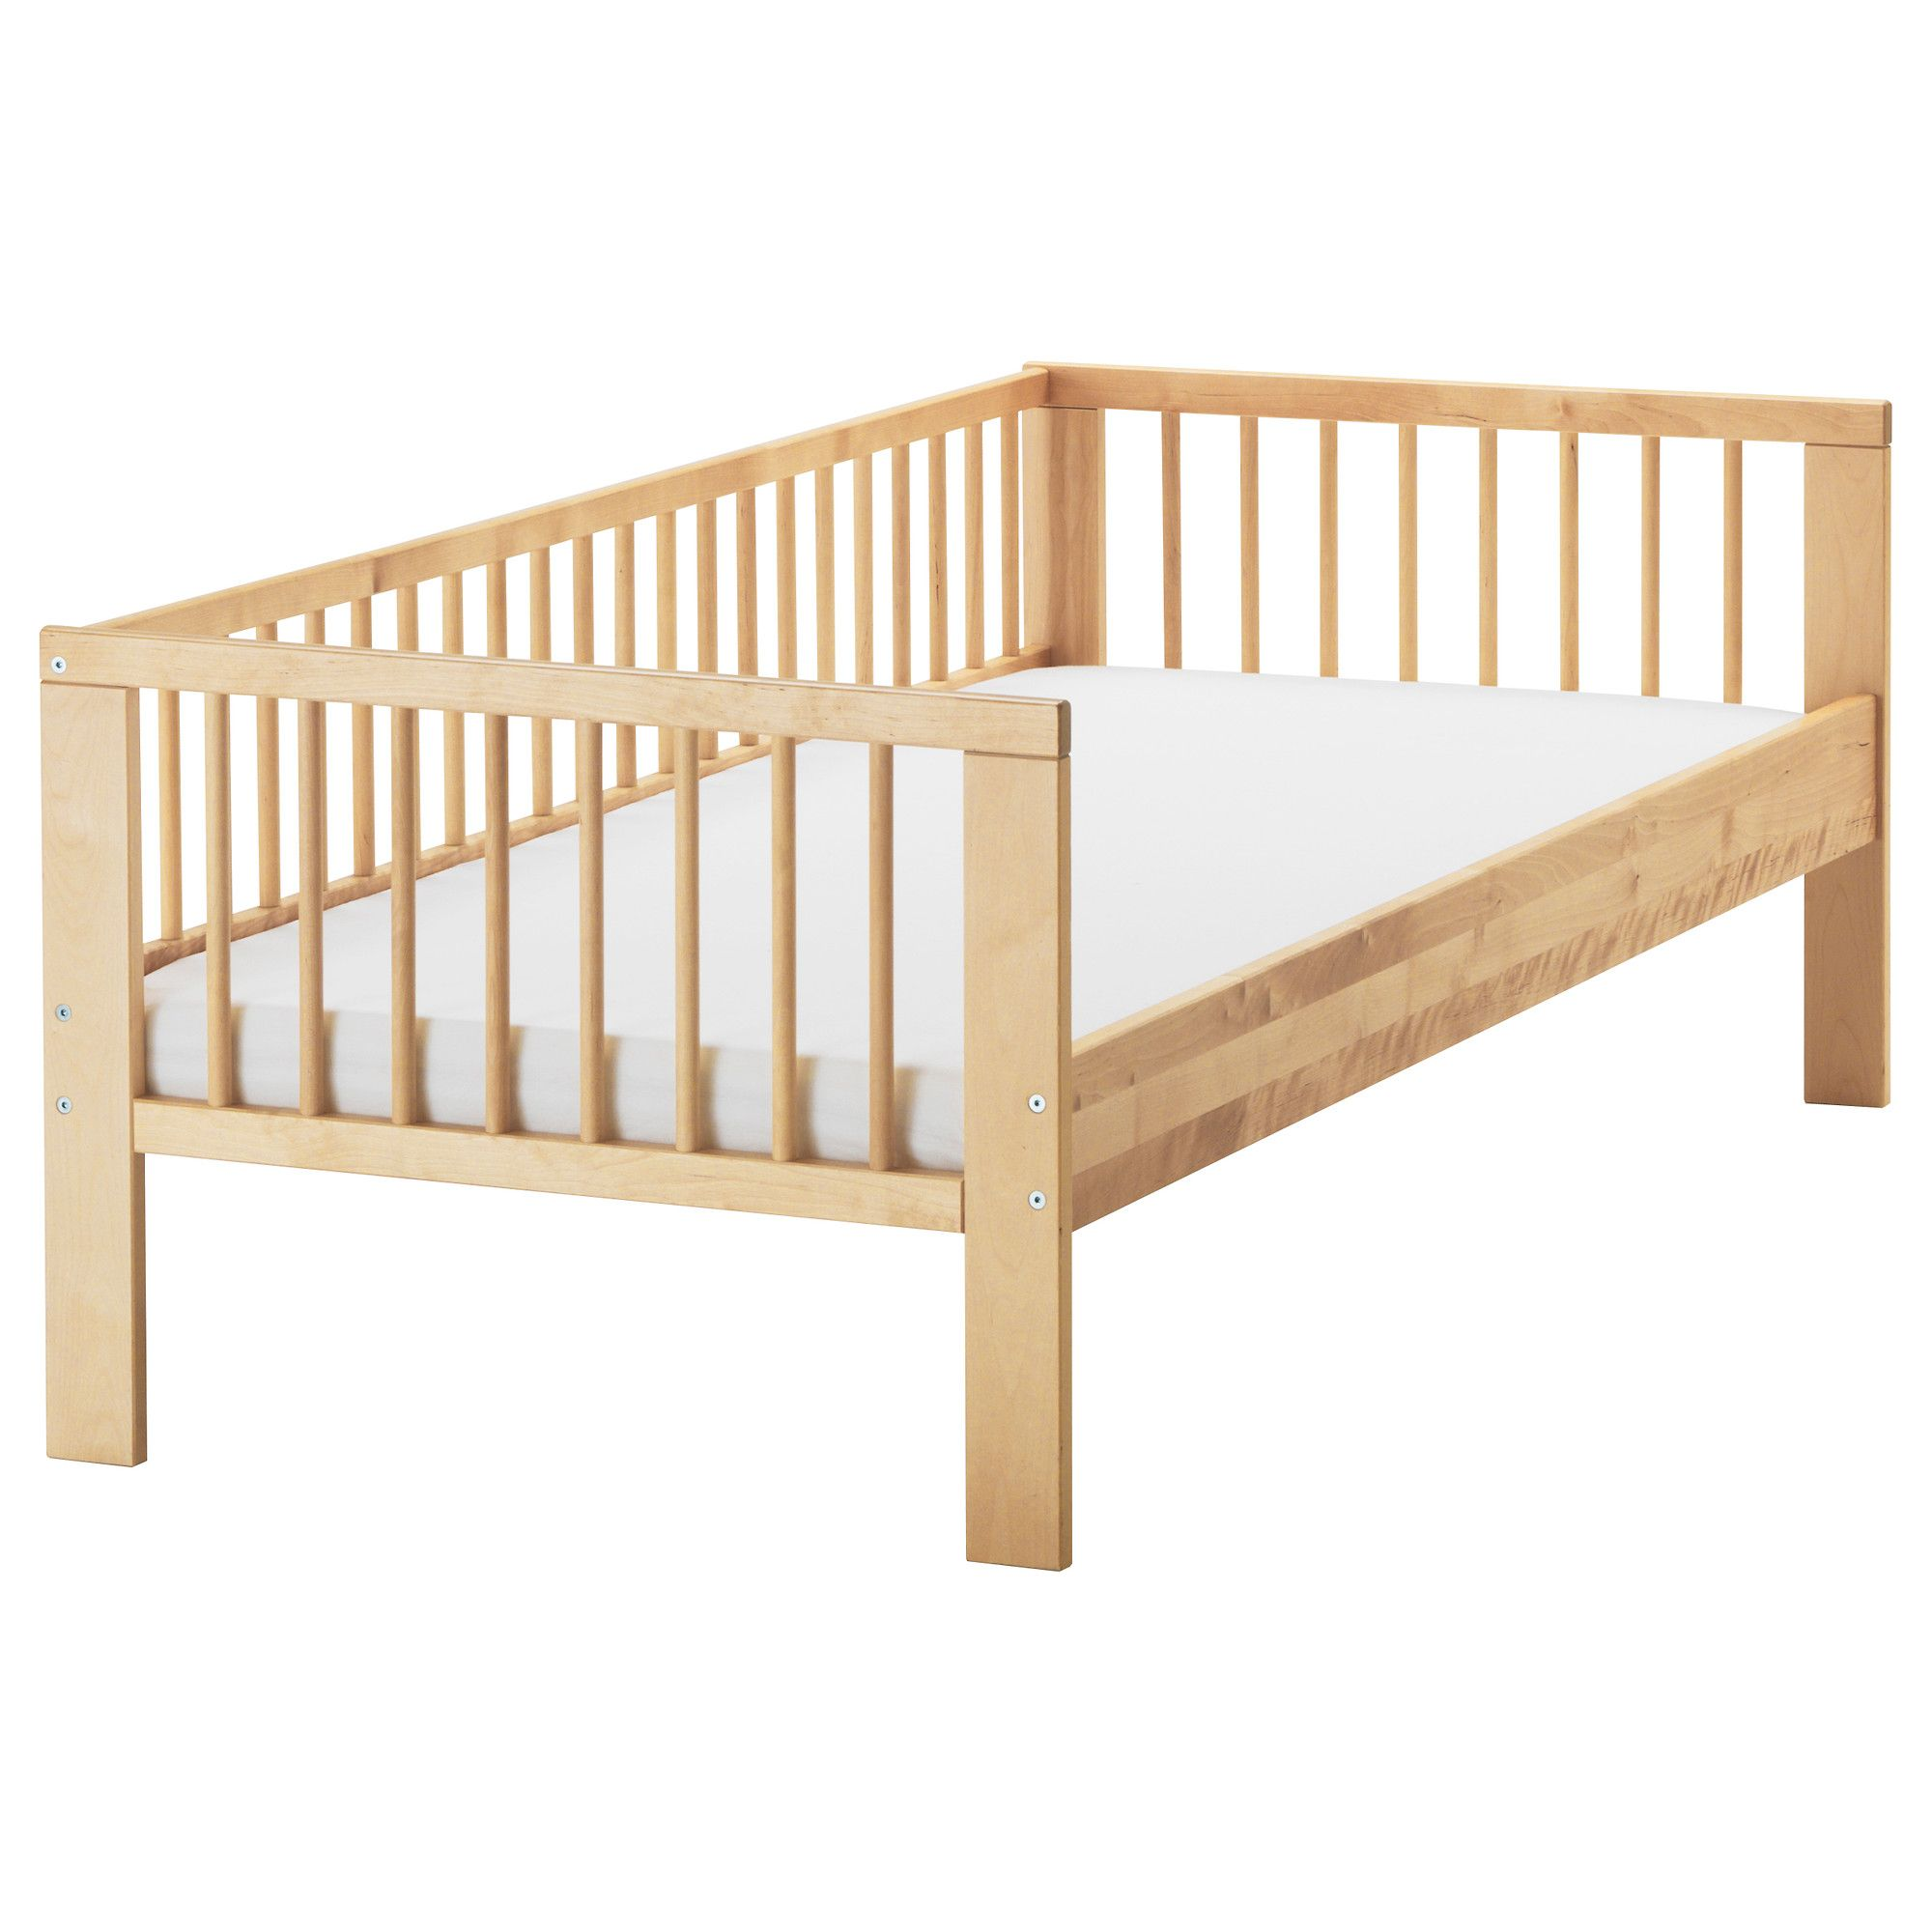 Ikea Nederland Interieur Online Bestellen Ikea Bed Ikea Toddler Bed Ikea Childrens Beds